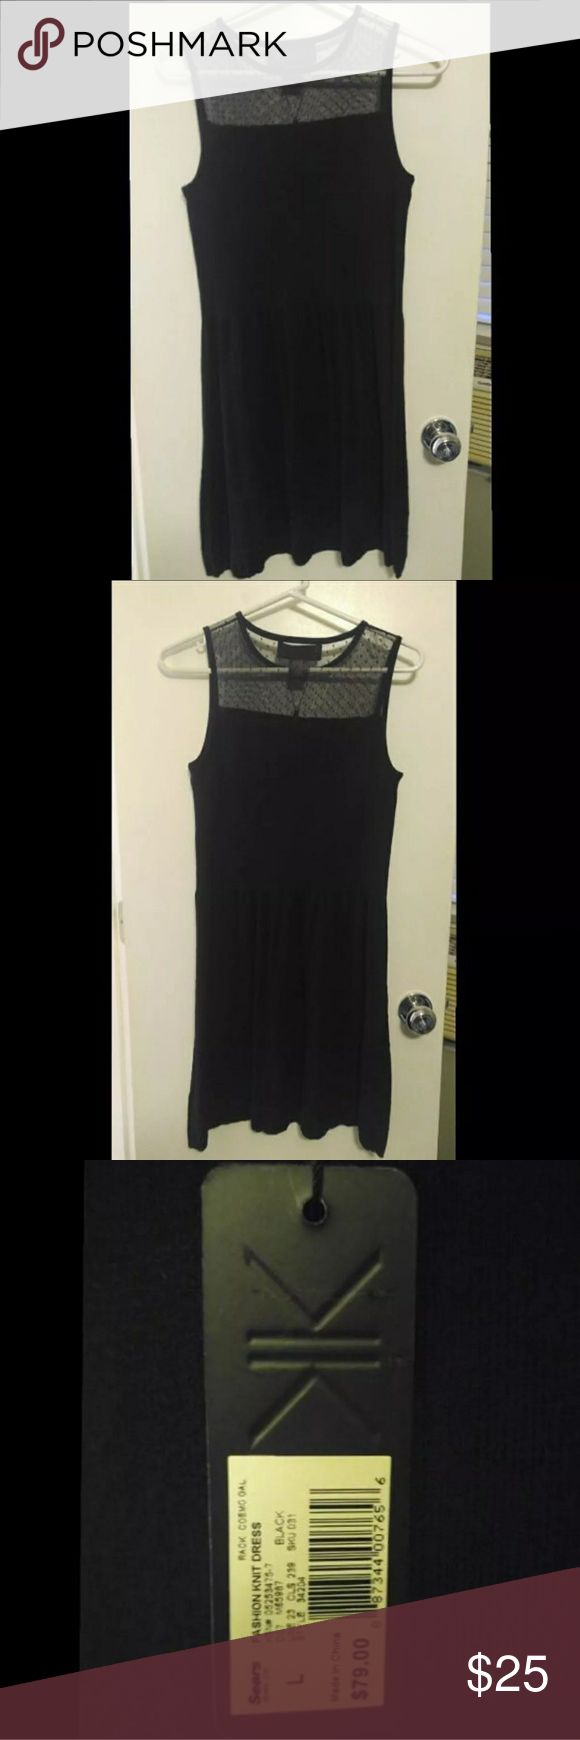 "Black Kim Kardashian dress - new with tags Kim Kardashian dress new with tags, size L, cute, lightweight material with a mesh top. I believe the dress comes to my knees (I'm 5'2""). Kardashian Kollection Dresses"